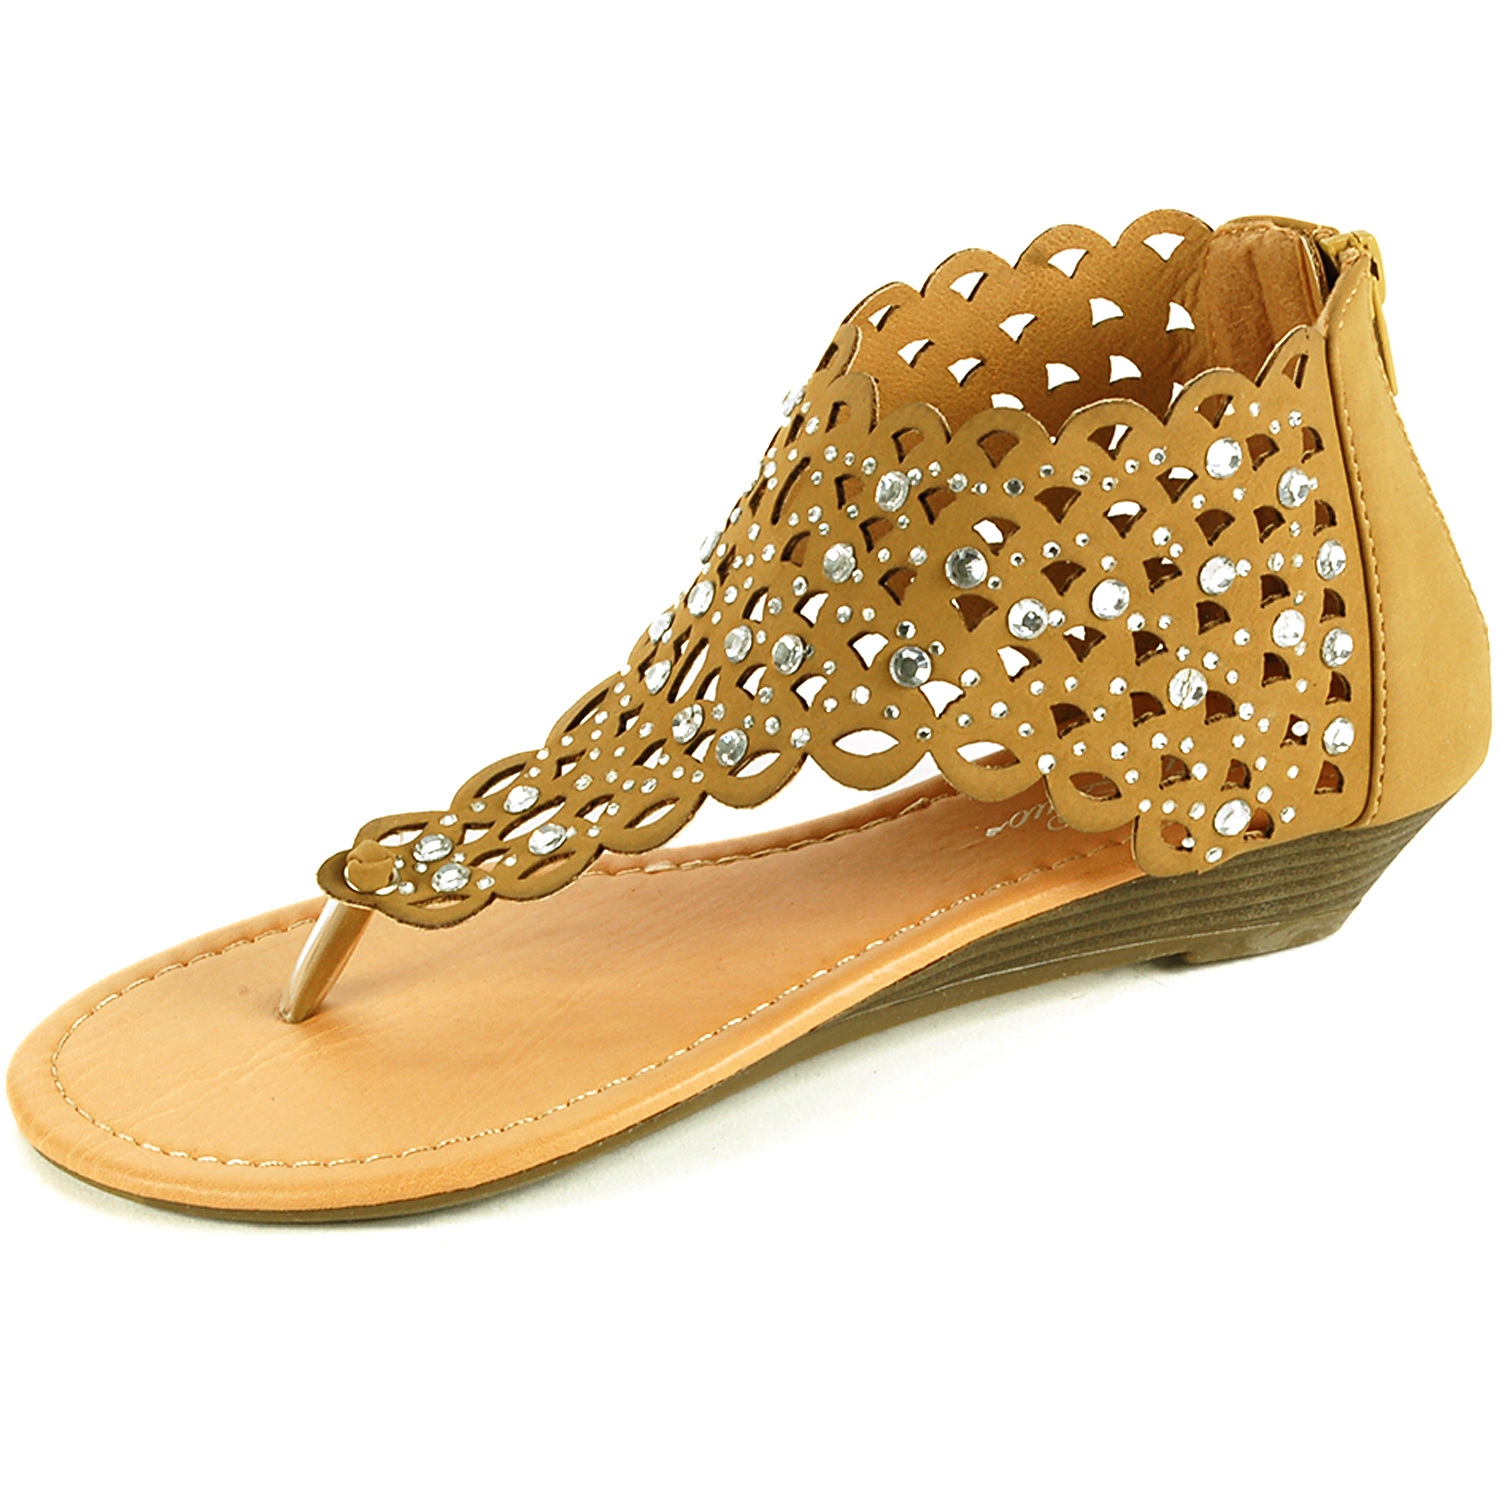 Women's sandals with bling - Womens Gladiator Sandals Wedge Heel Thongs Dressy Ankle